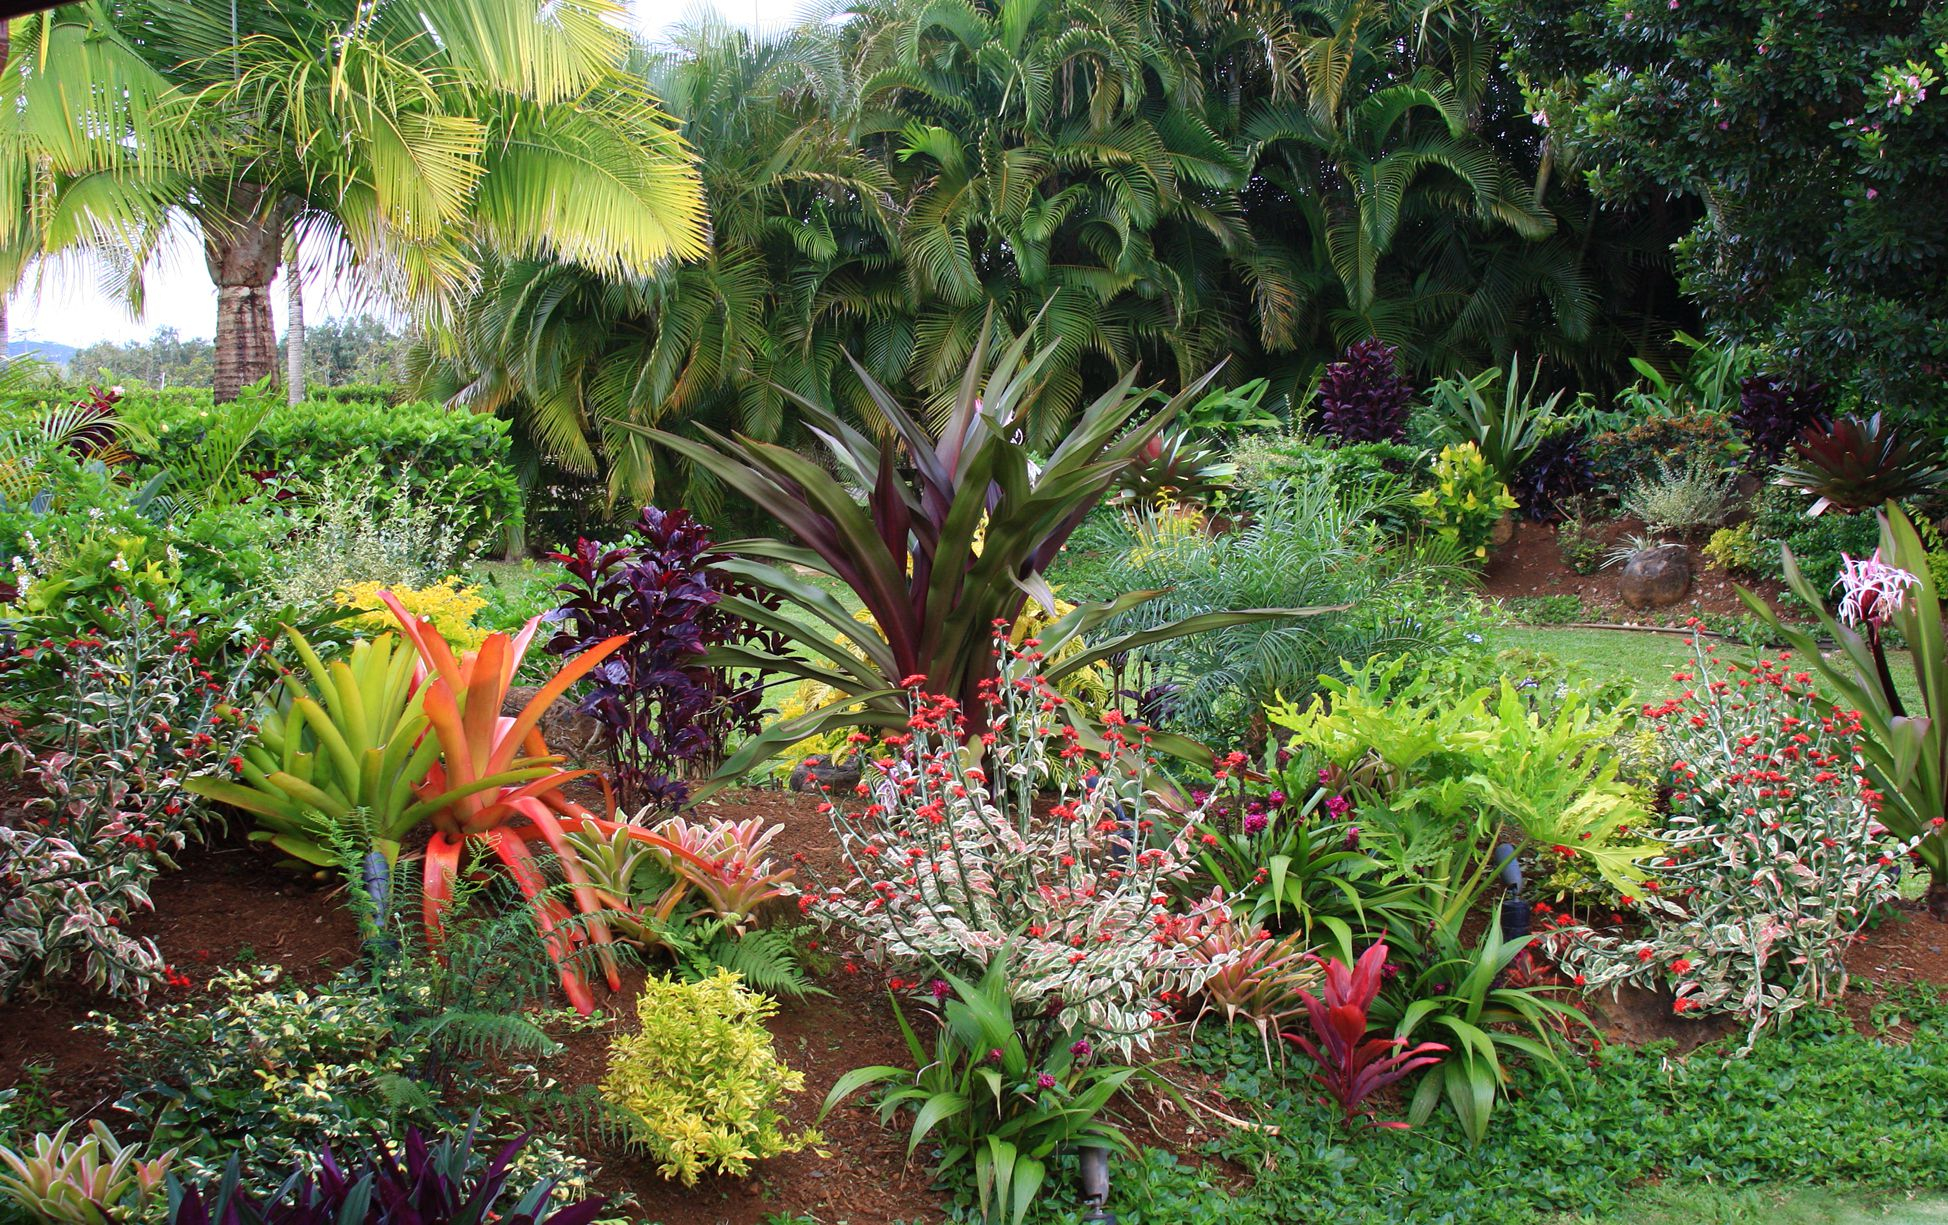 Tropical Flower Garden Design Ideas for Tropical Backyard Landscaping